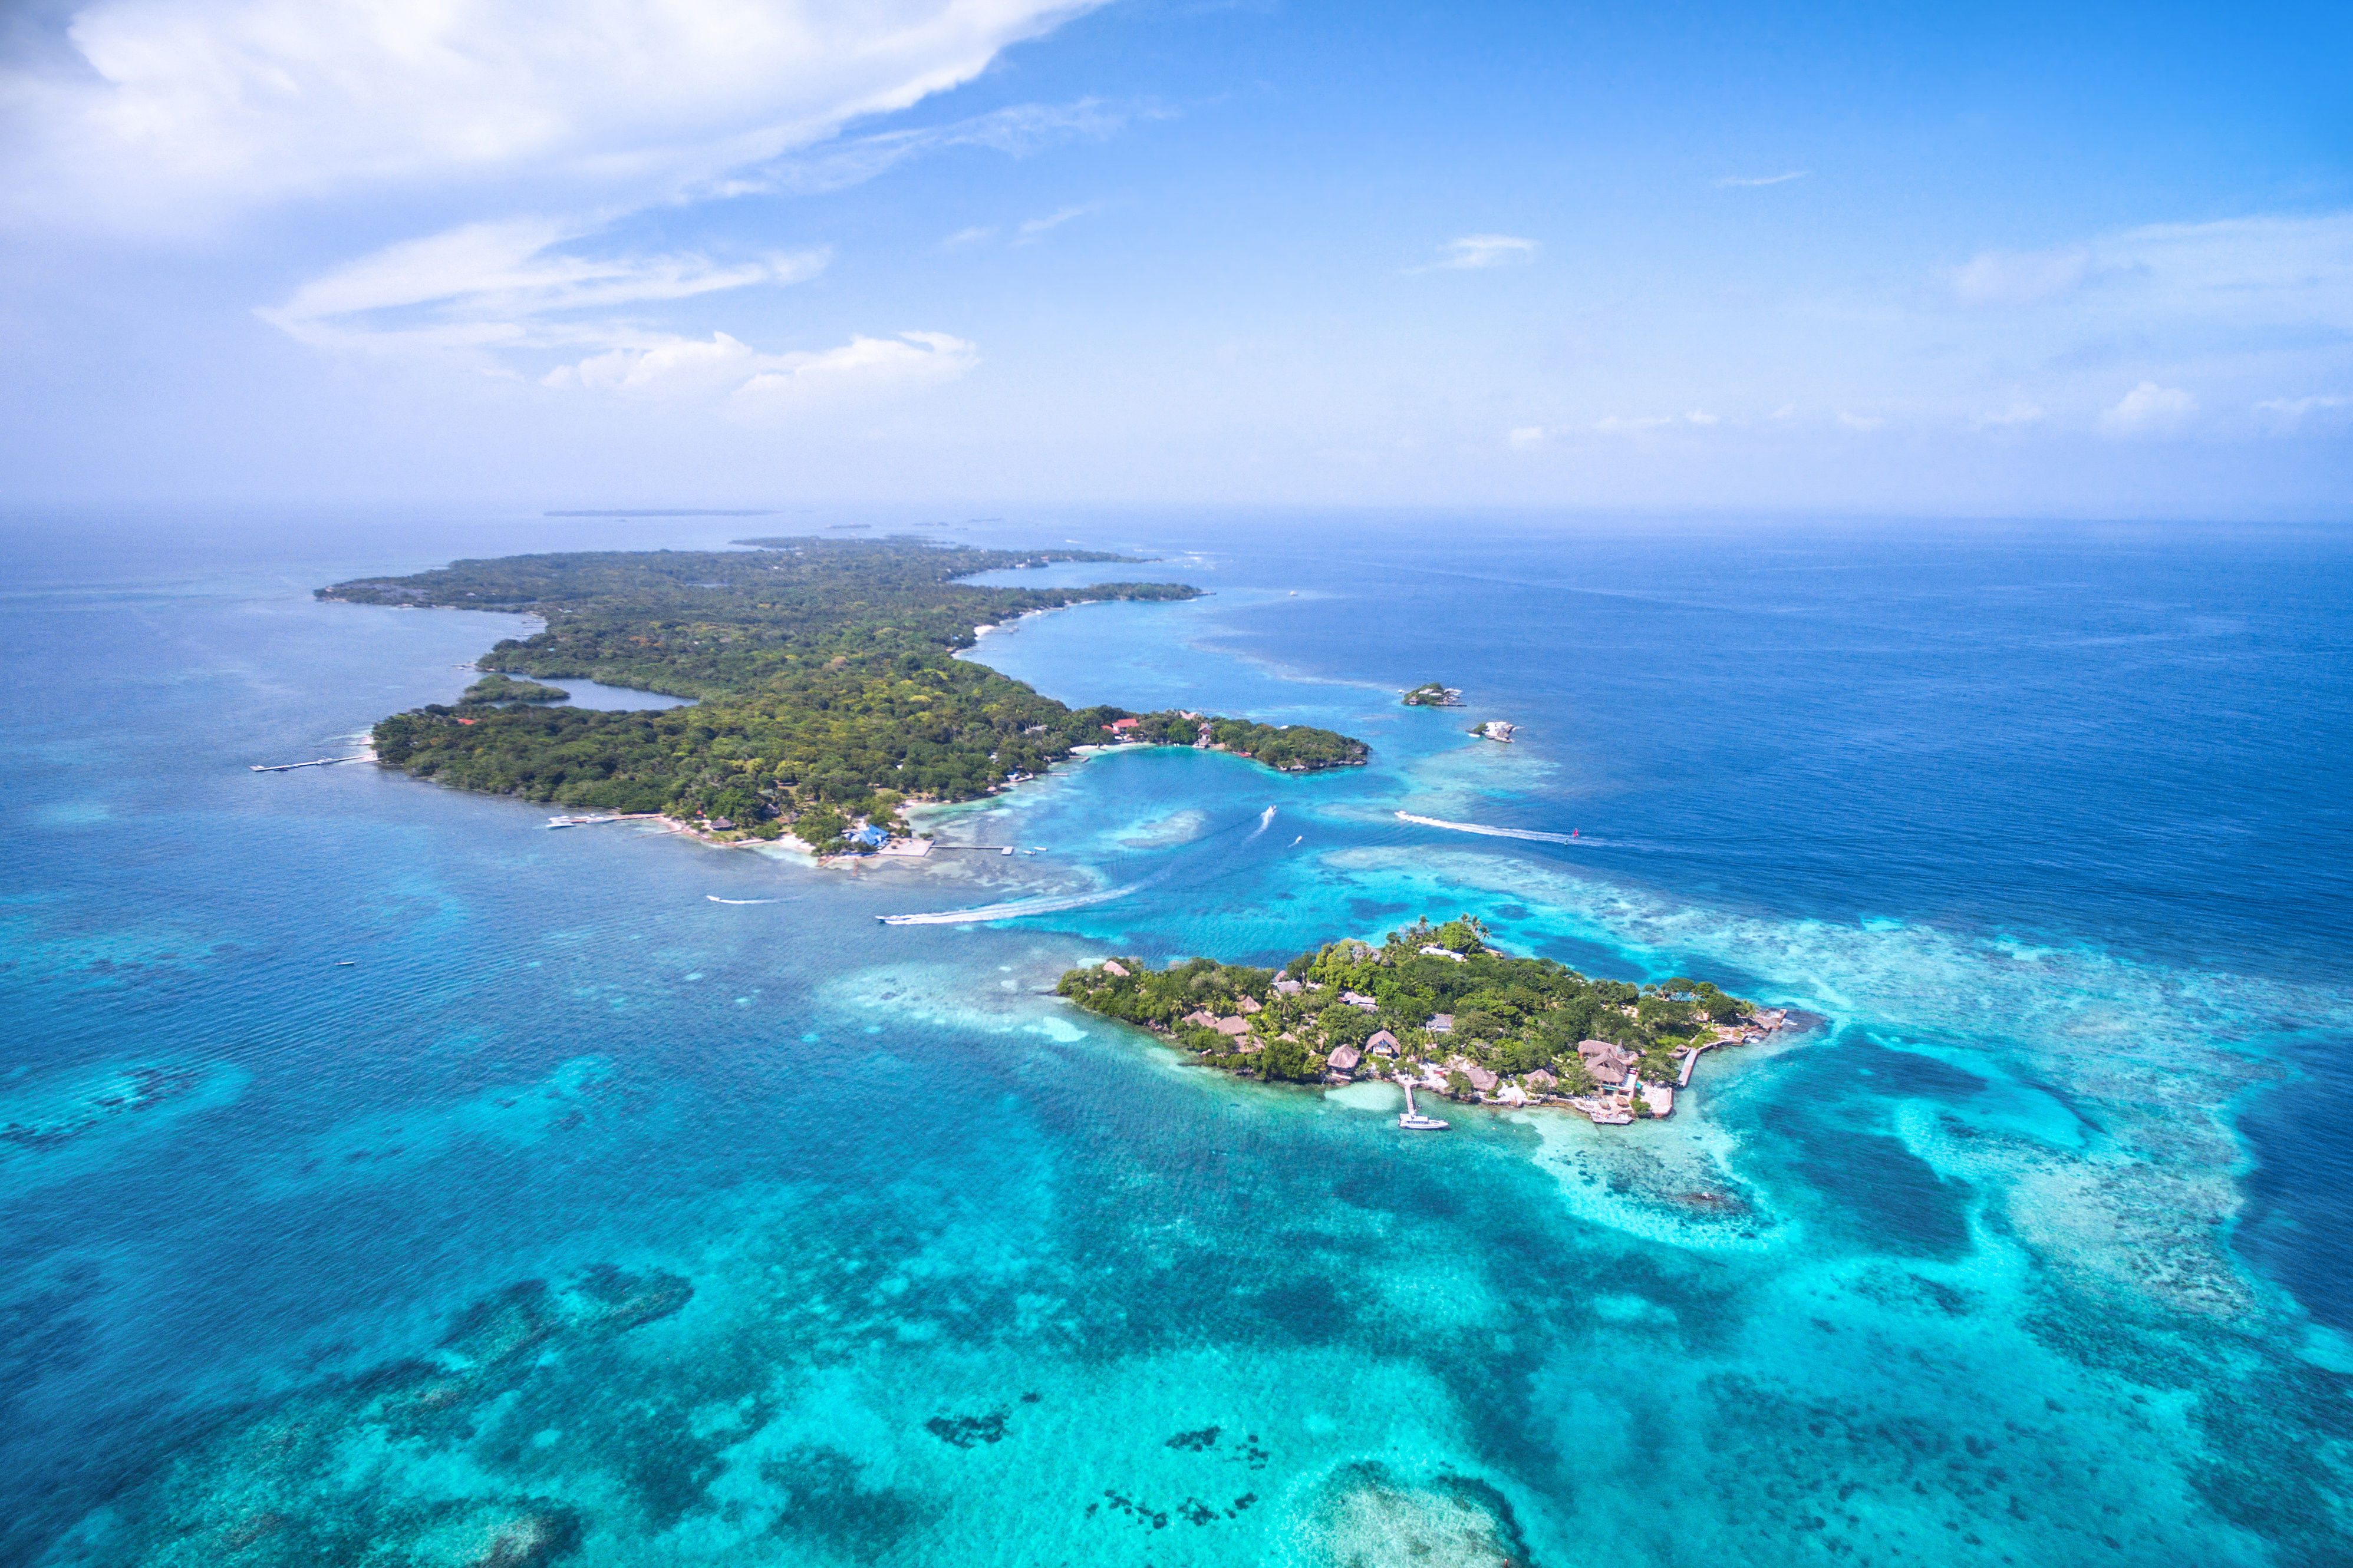 Aerial view of lush green Rosario Islands in Colombia surrounded by tropical turquoise clear waters.